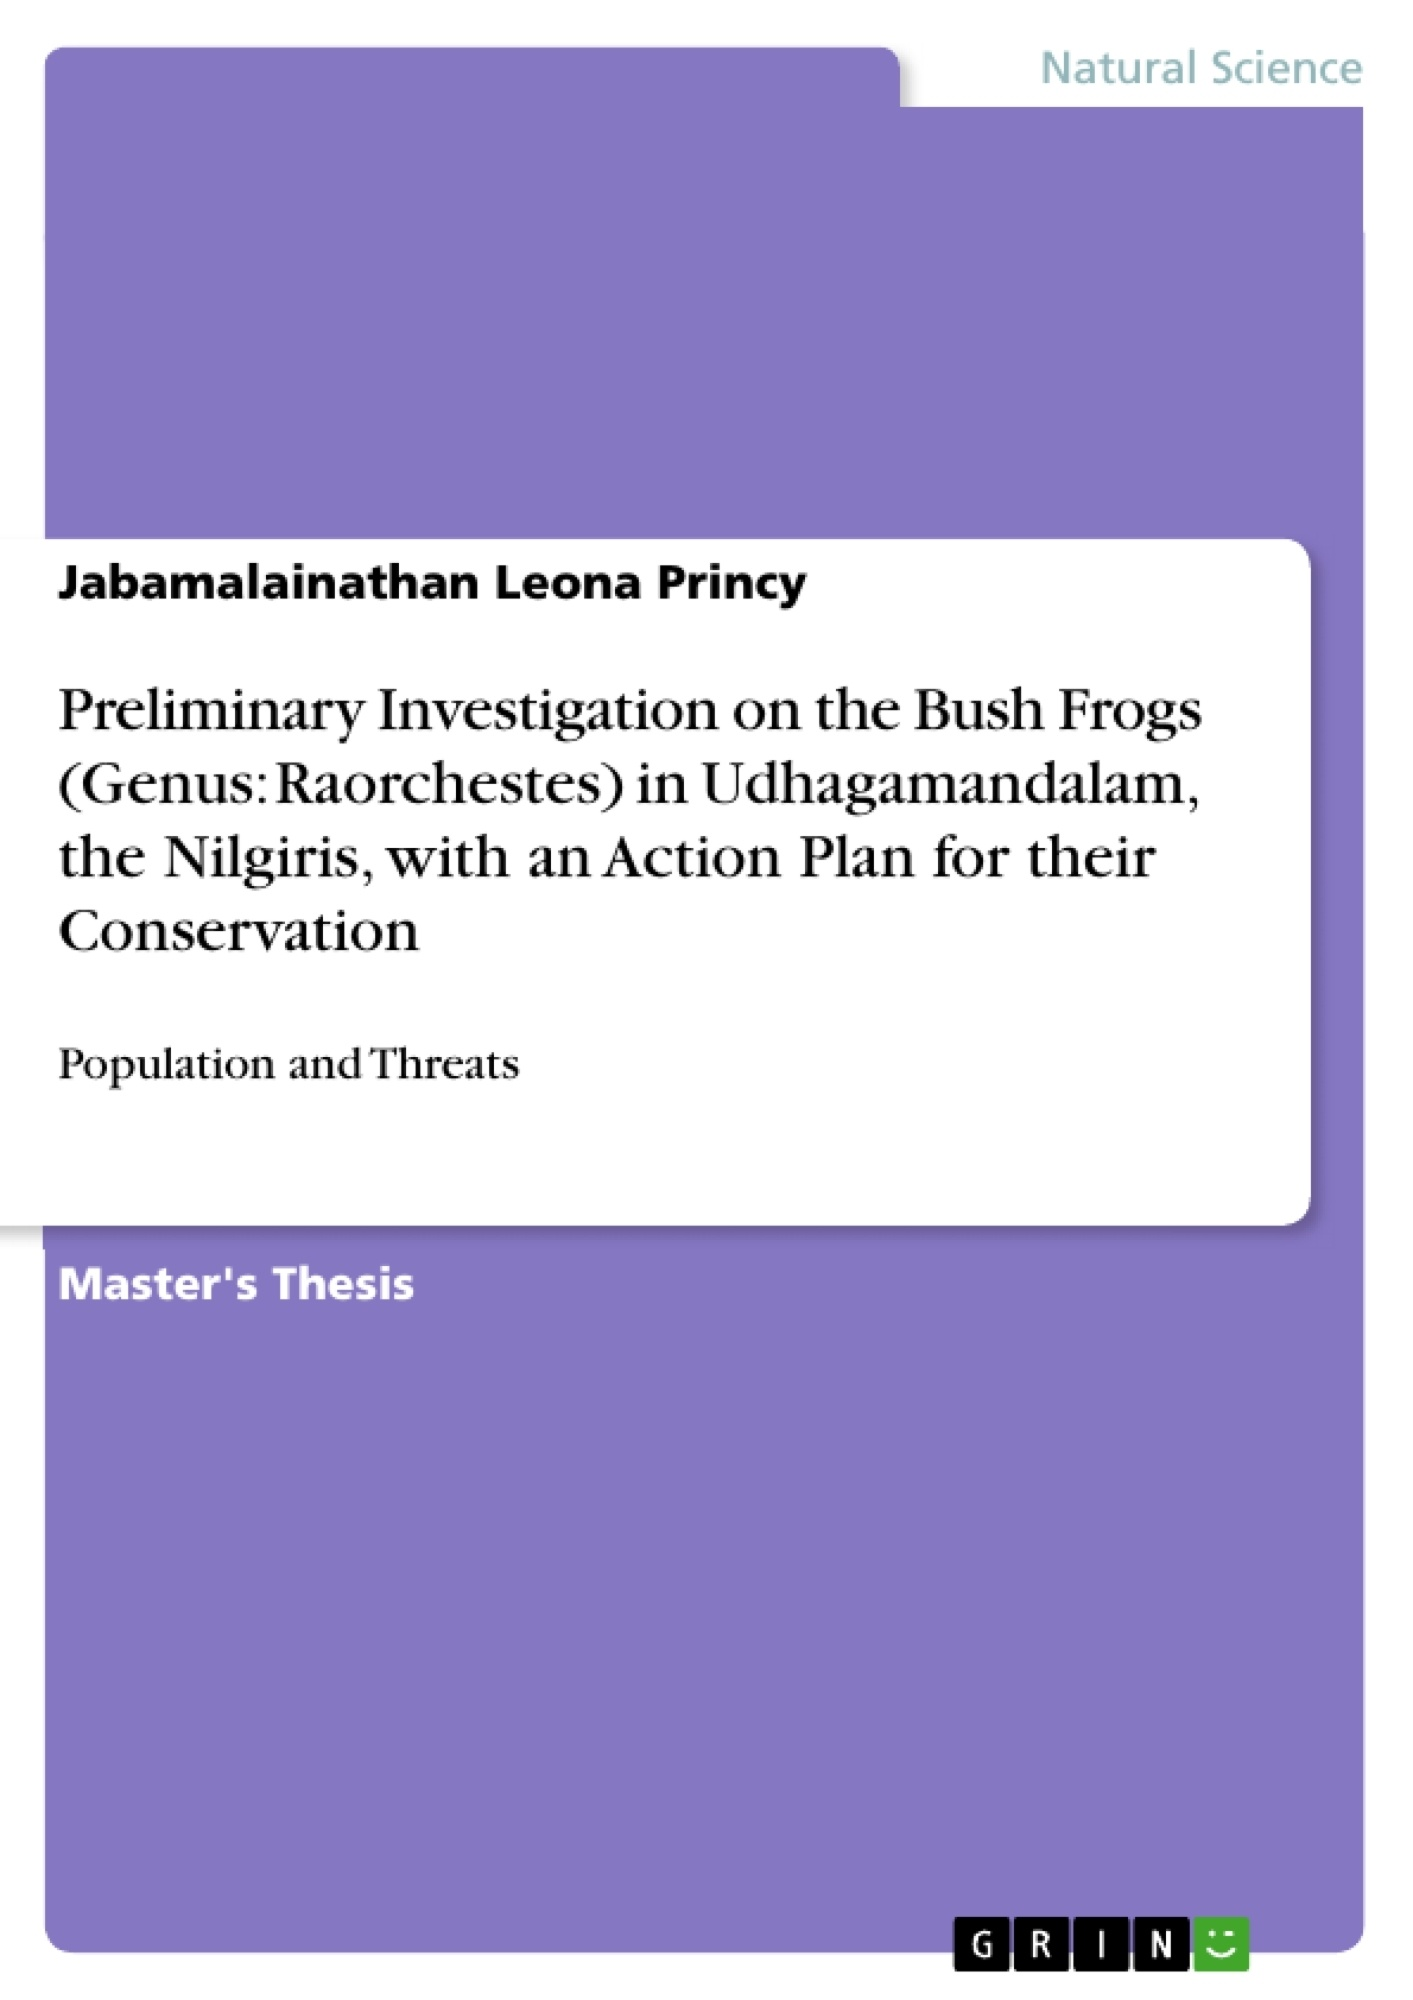 Title: Preliminary Investigation on the Bush Frogs (Genus: Raorchestes) in Udhagamandalam, the Nilgiris, with an Action Plan for their Conservation